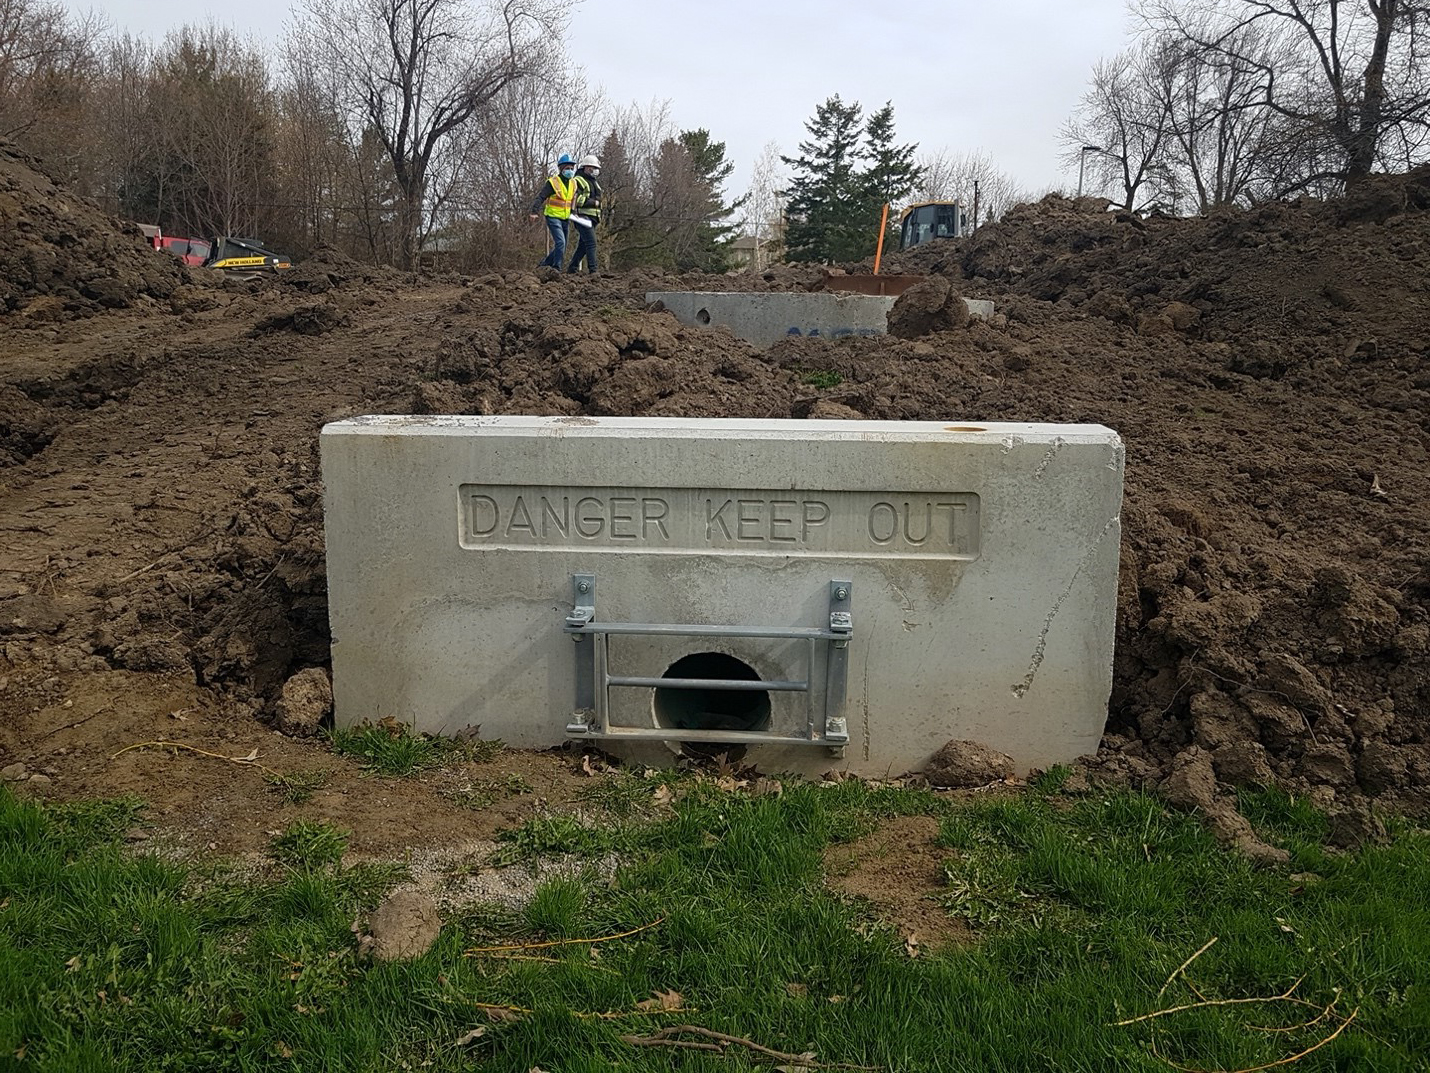 A new culvert and headwall has been installed to channel stormwater to a catchbasin.